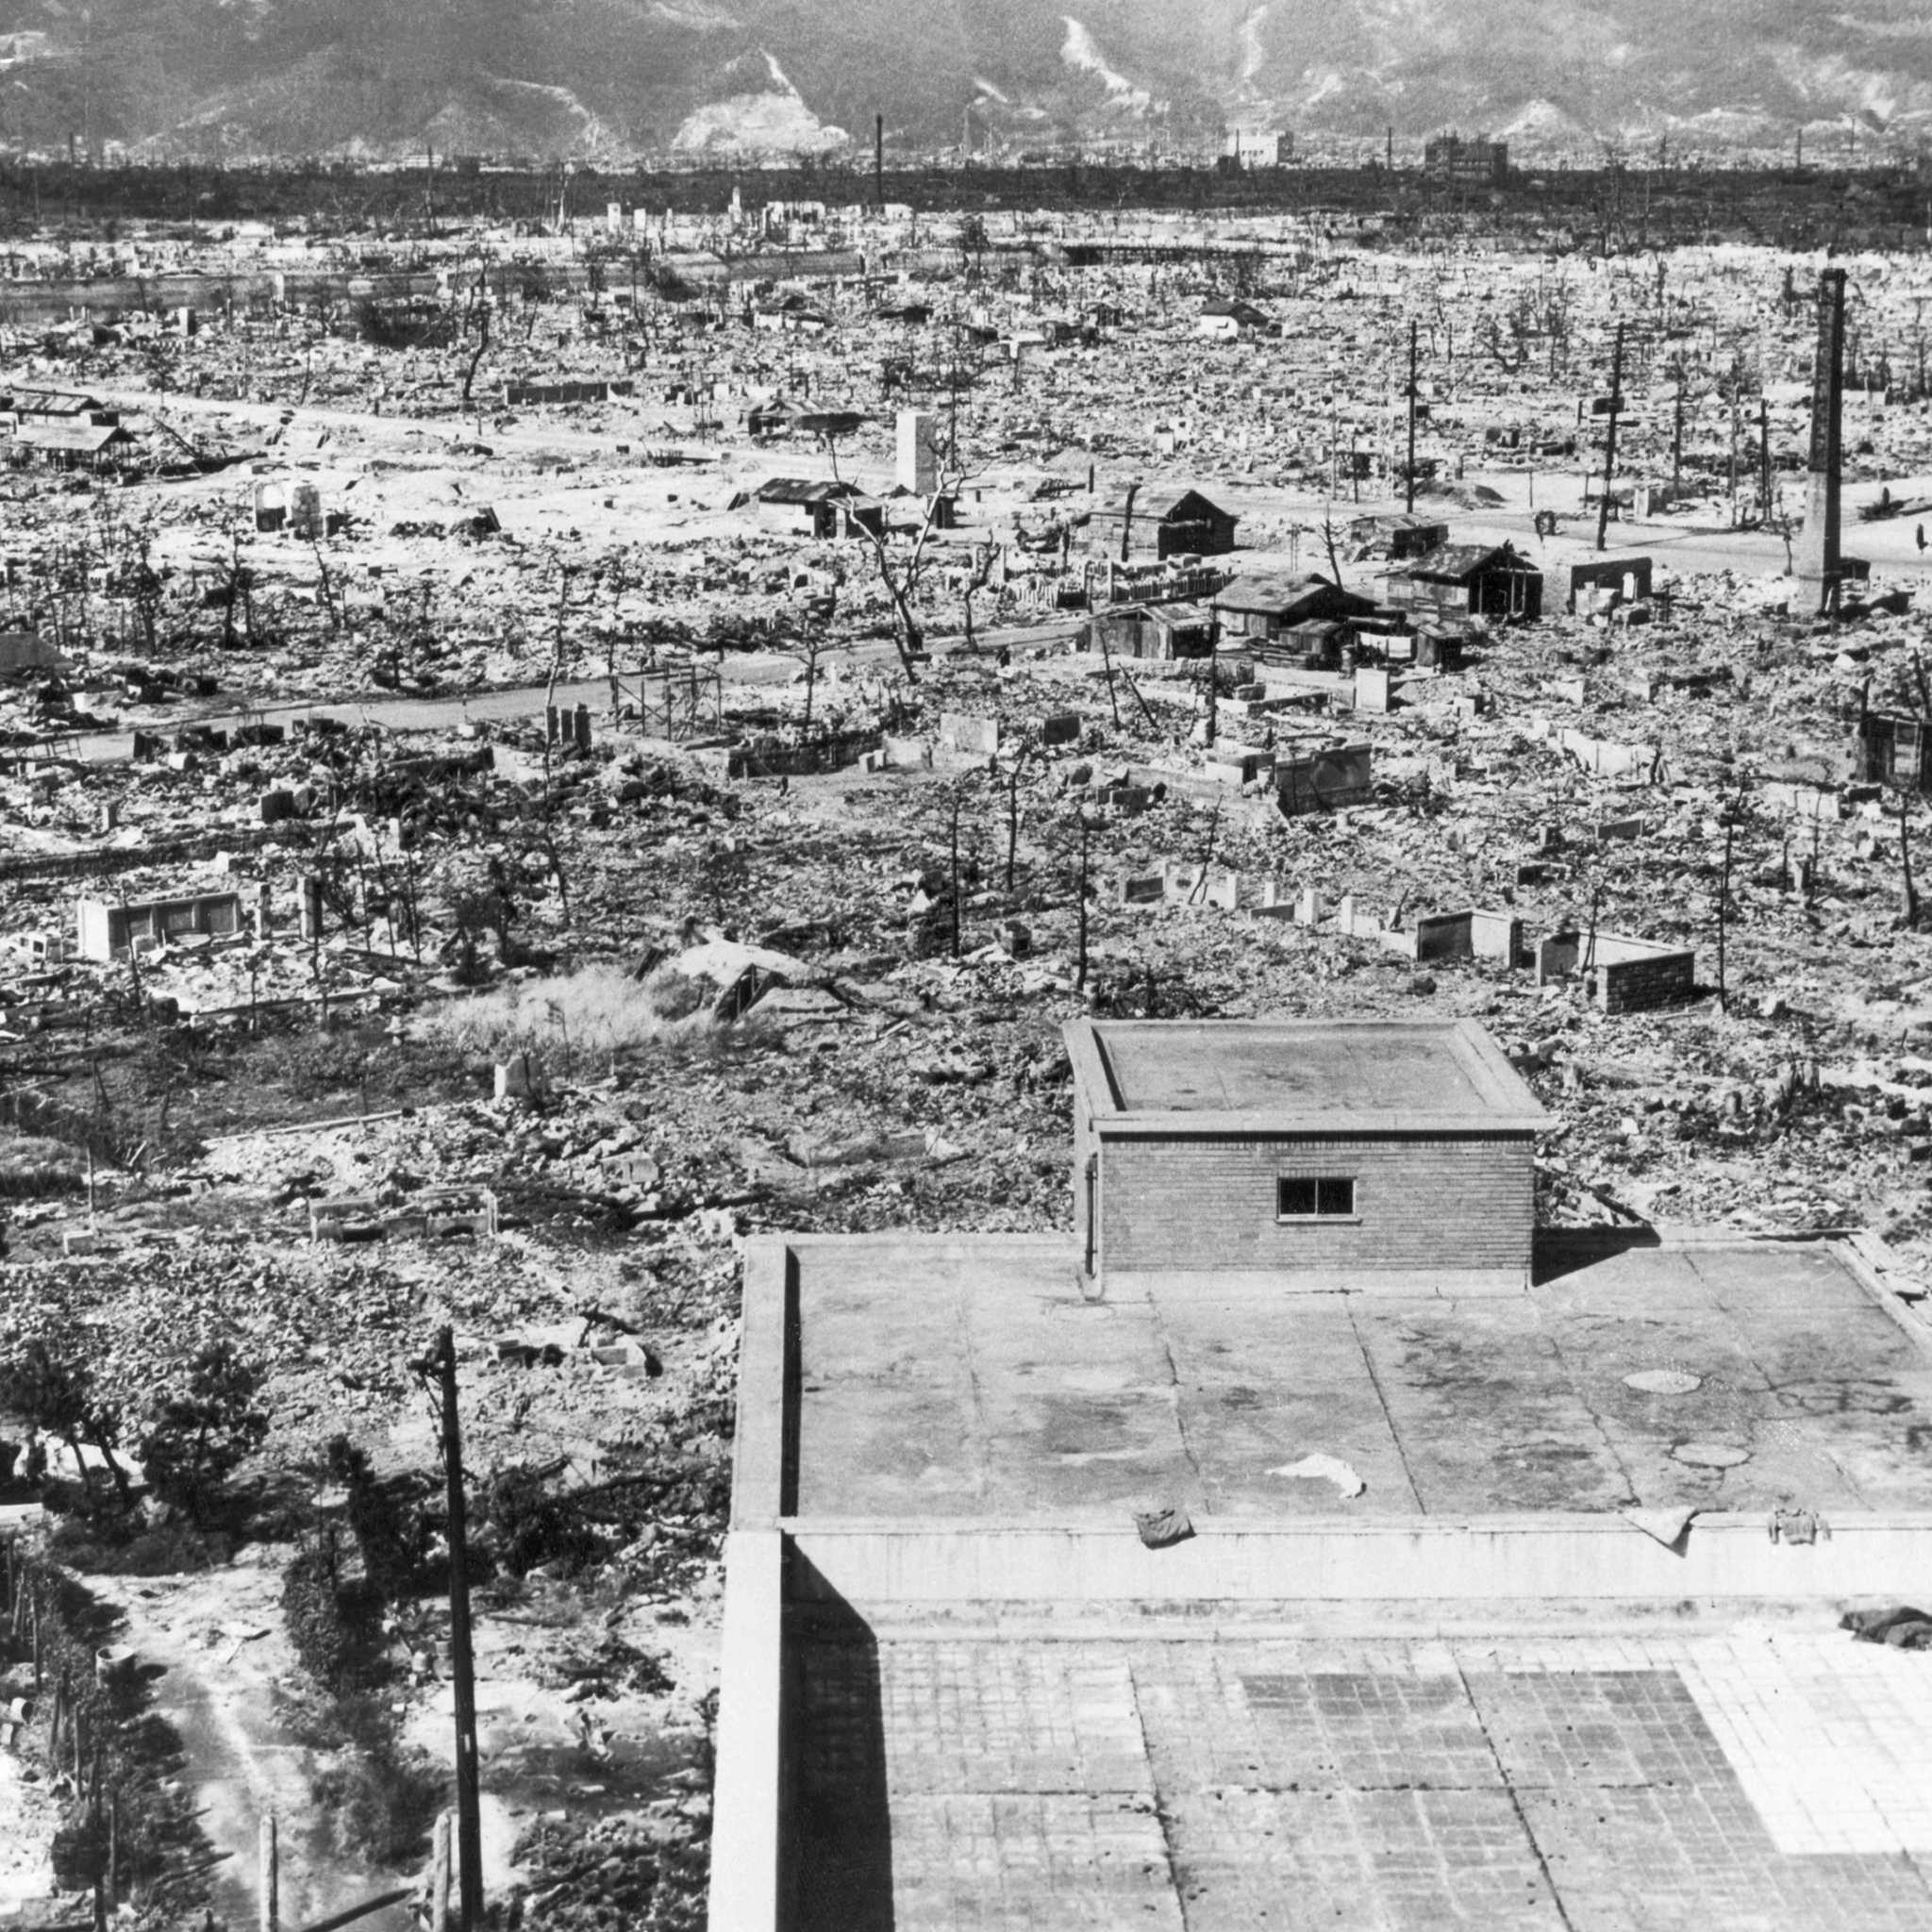 Destruction of Hiroshima